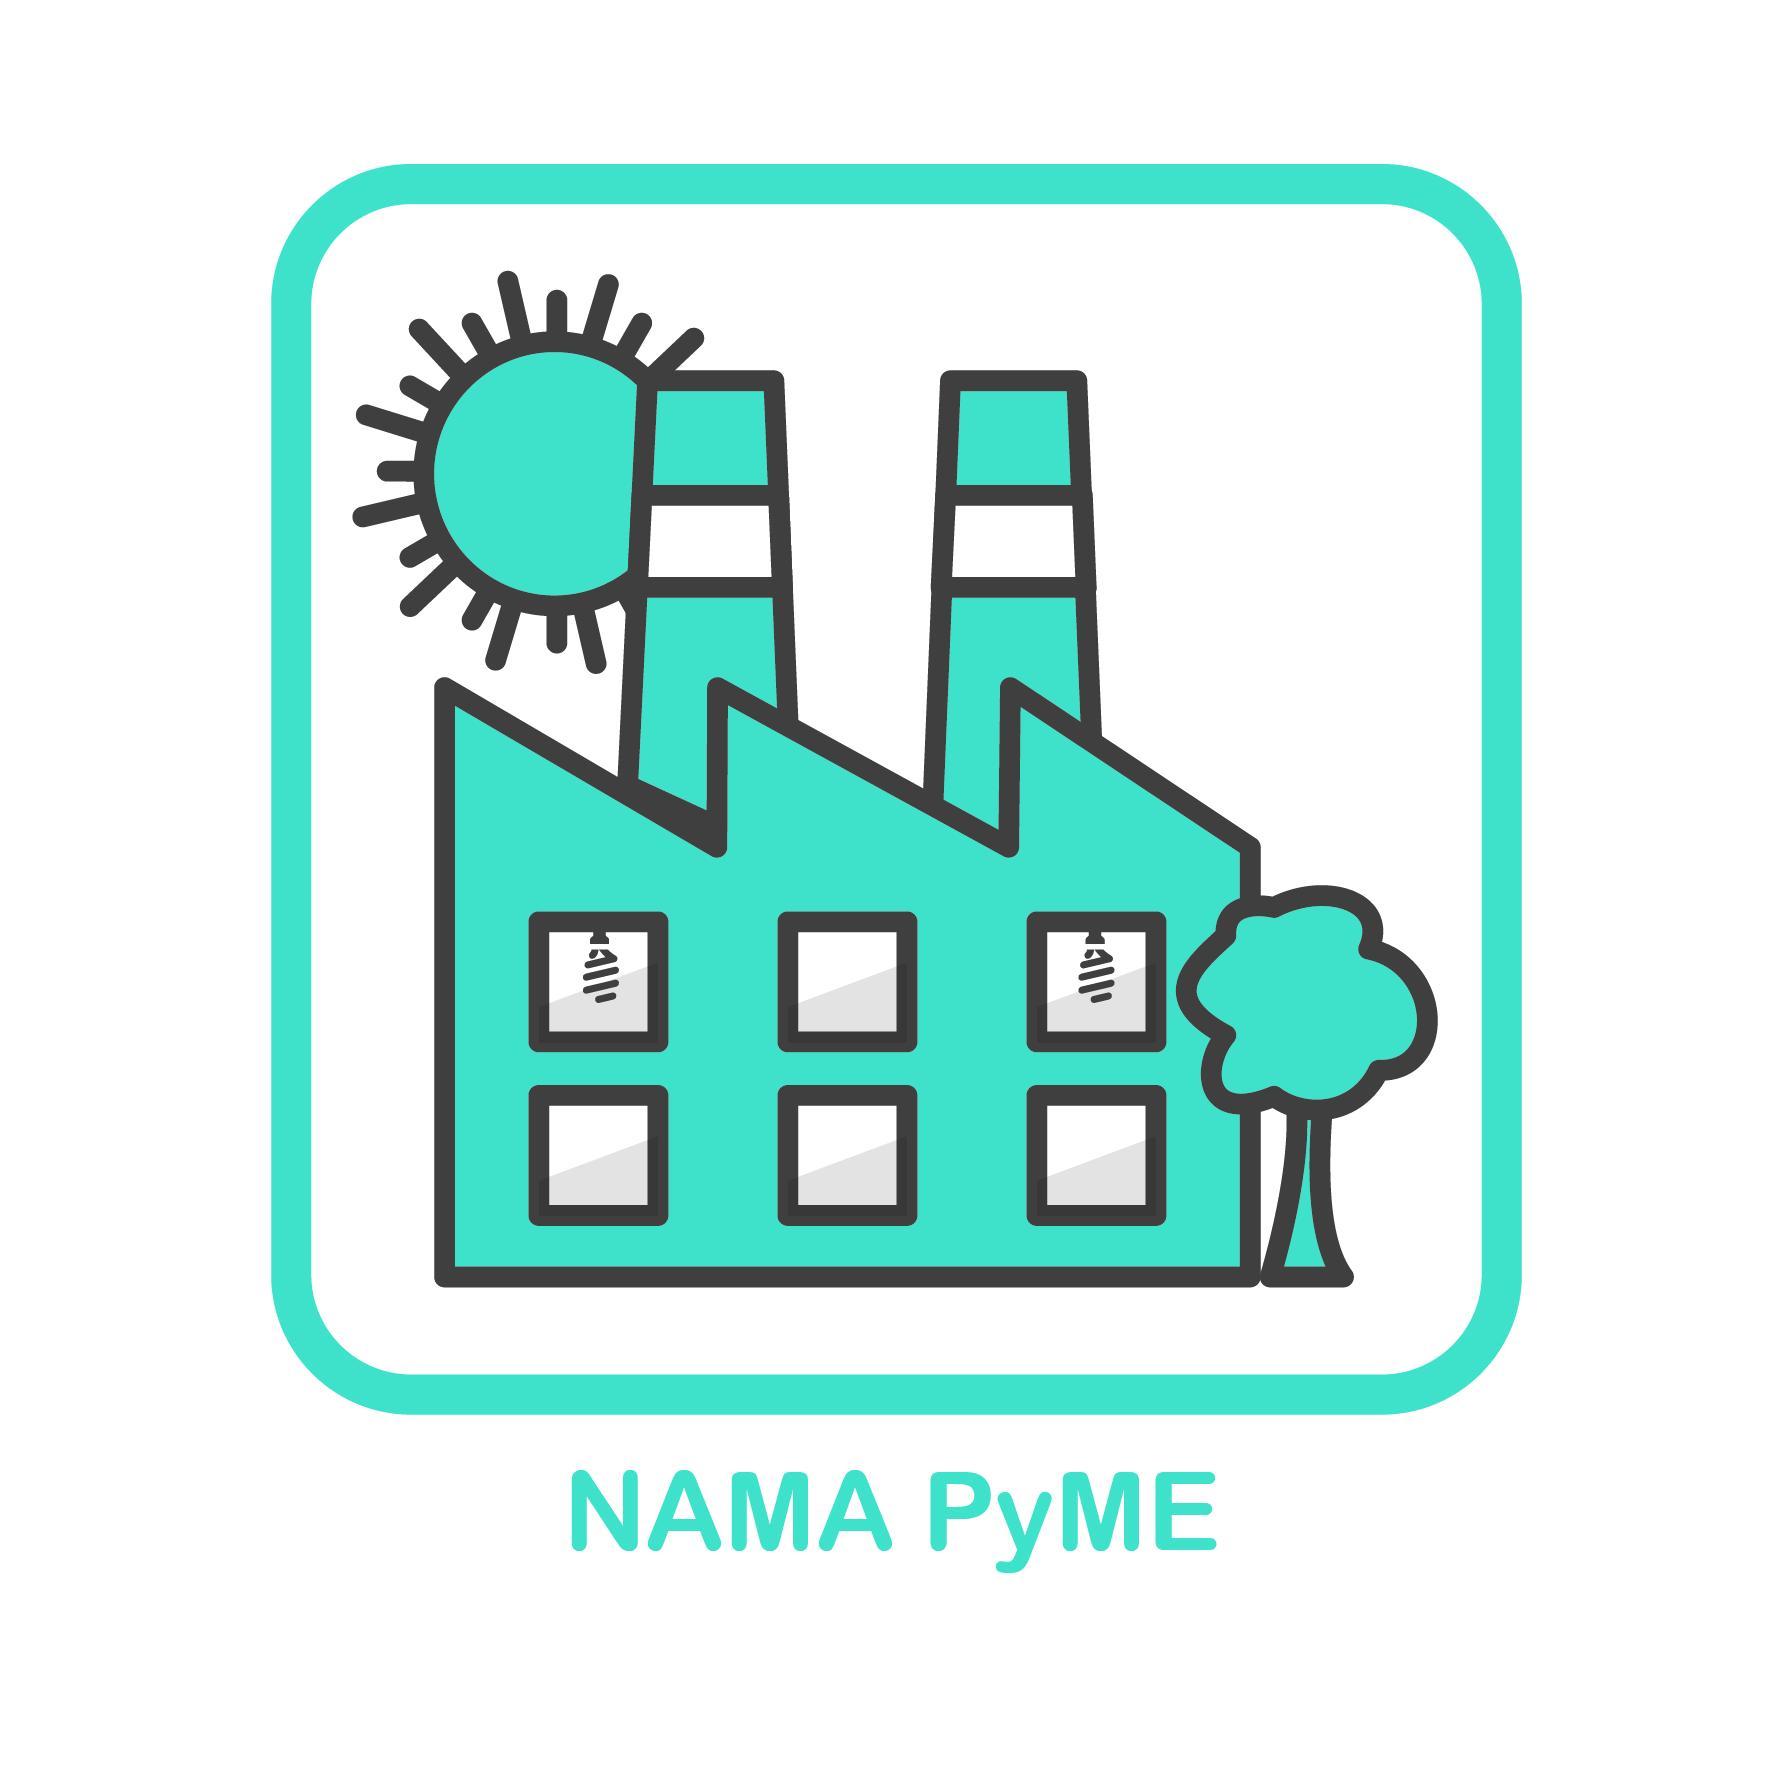 Icon of 04 NAMA PyME